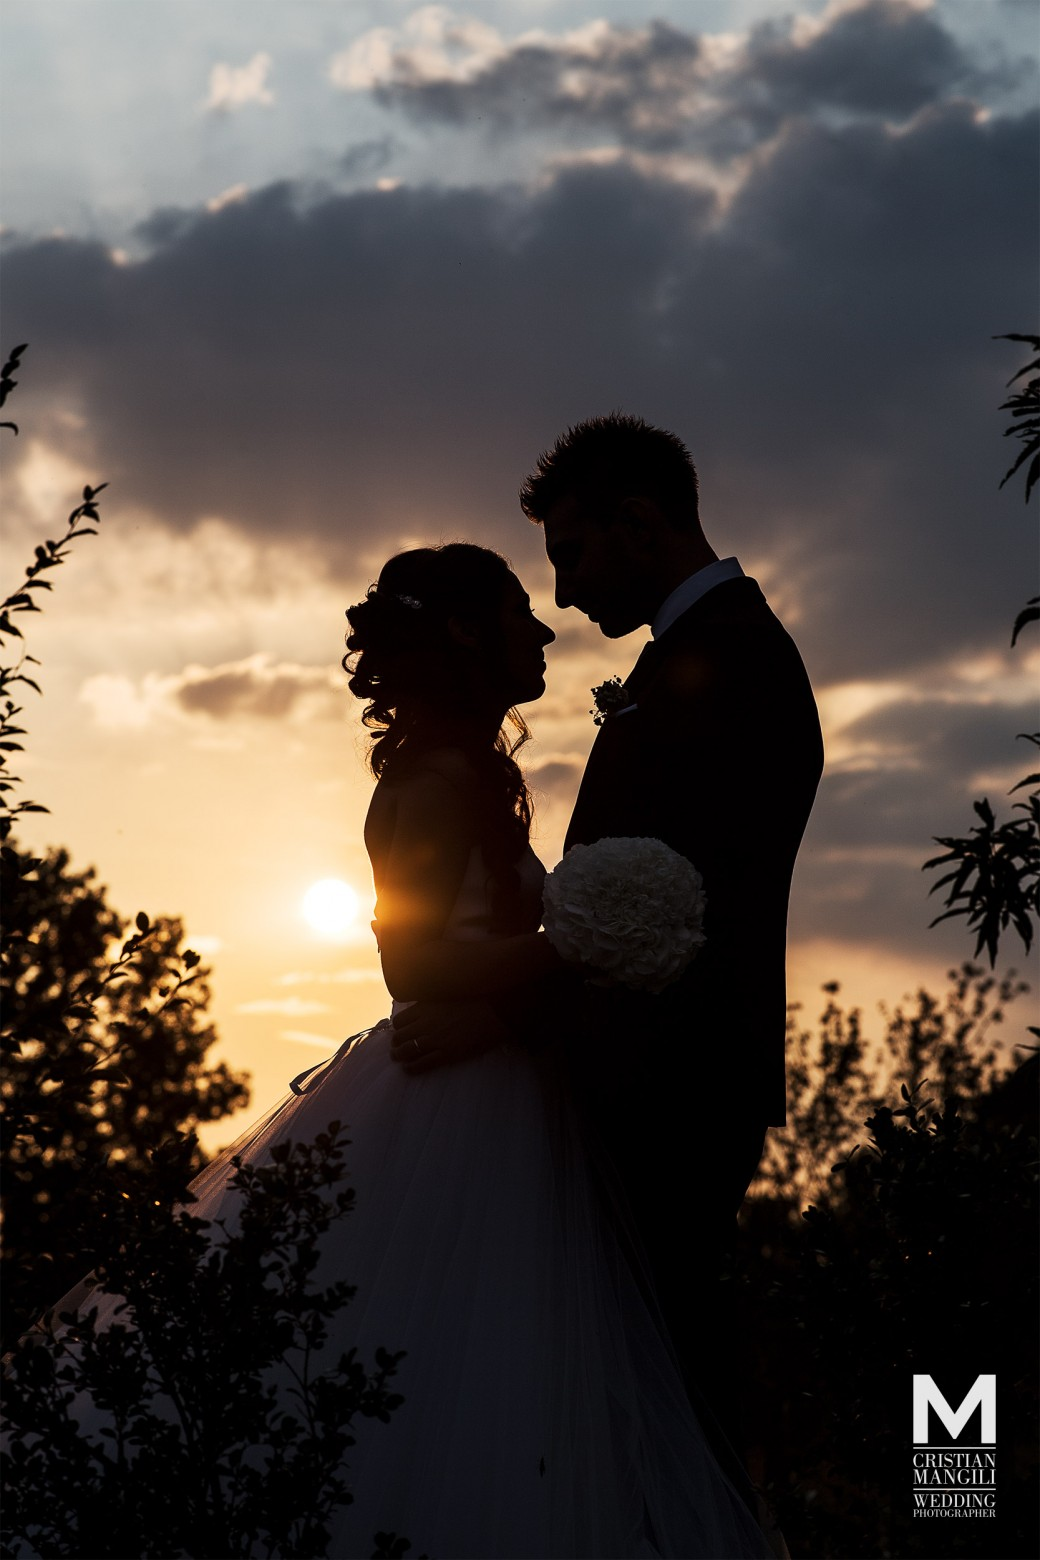 wedding-countryside-location-in-italy-sunset-portrait-silhouette